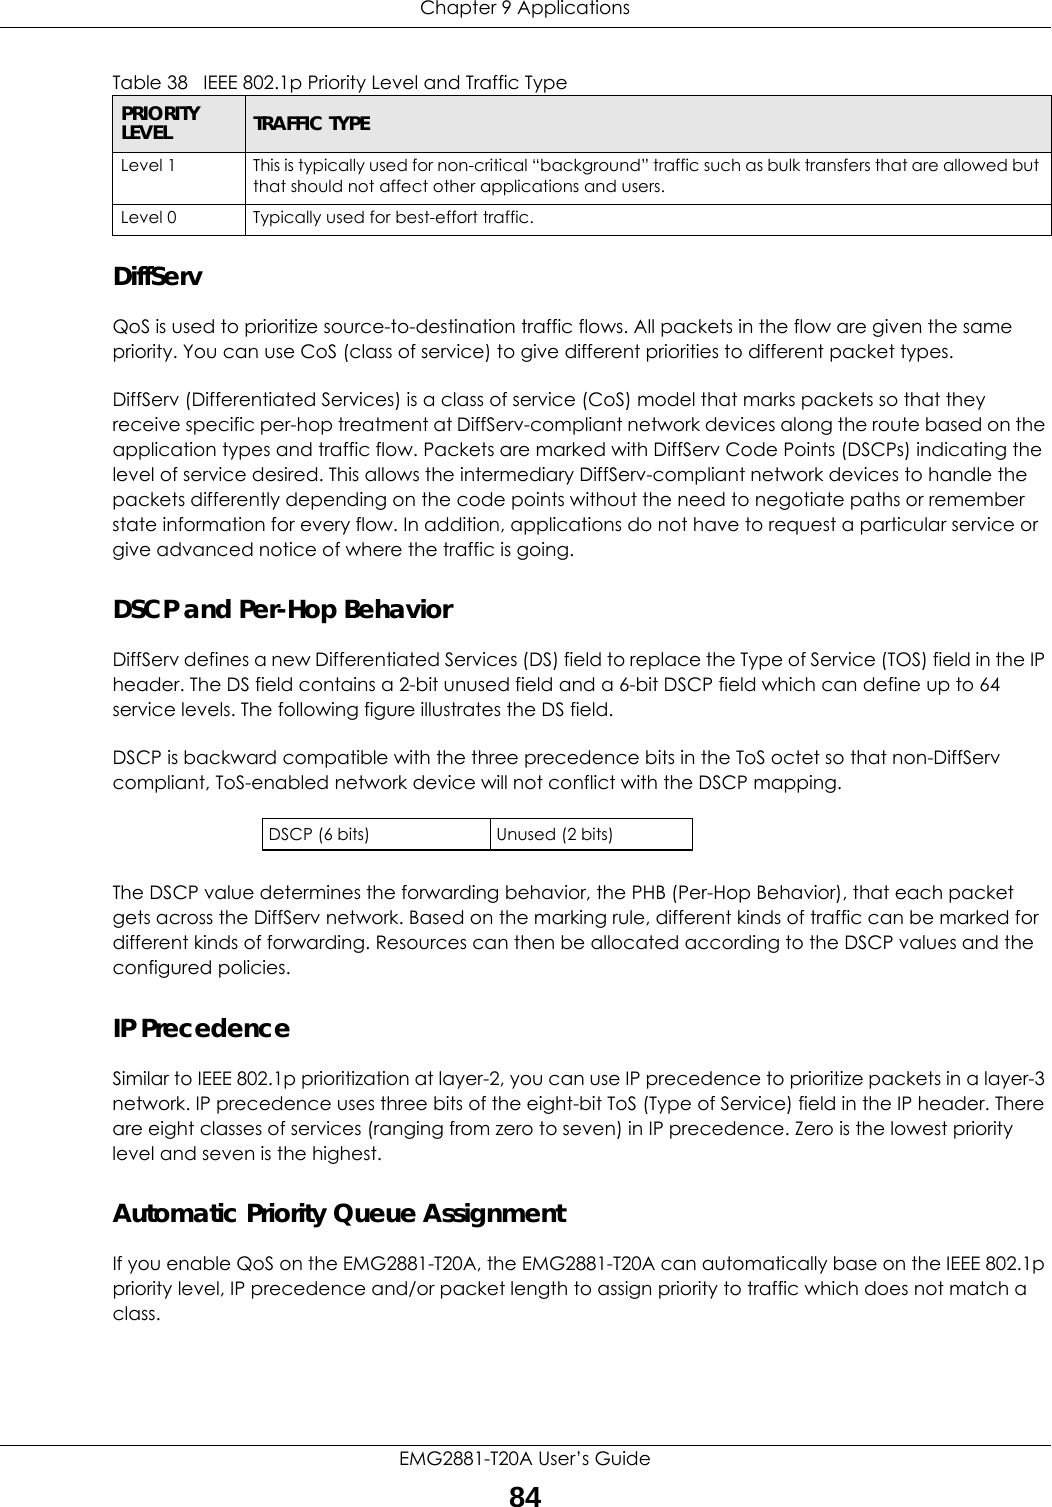 Chapter 9 ApplicationsEMG2881-T20A User's Guide84DiffServ QoS is used to prioritize source-to-destination traffic flows. All packets in the flow are given the same priority. You can use CoS (class of service) to give different priorities to different packet types.DiffServ (Differentiated Services) is a class of service (CoS) model that marks packets so that they receive specific per-hop treatment at DiffServ-compliant network devices along the route based on the application types and traffic flow. Packets are marked with DiffServ Code Points (DSCPs) indicating the level of service desired. This allows the intermediary DiffServ-compliant network devices to handle the packets differently depending on the code points without the need to negotiate paths or remember state information for every flow. In addition, applications do not have to request a particular service or give advanced notice of where the traffic is going. DSCP and Per-Hop Behavior DiffServ defines a new Differentiated Services (DS) field to replace the Type of Service (TOS) field in the IP header. The DS field contains a 2-bit unused field and a 6-bit DSCP field which can define up to 64 service levels. The following figure illustrates the DS field. DSCP is backward compatible with the three precedence bits in the ToS octet so that non-DiffServ compliant, ToS-enabled network device will not conflict with the DSCP mapping.The DSCP value determines the forwarding behavior, the PHB (Per-Hop Behavior), that each packet gets across the DiffServ network. Based on the marking rule, different kinds of traffic can be marked for different kinds of forwarding. Resources can then be allocated according to the DSCP values and the configured policies.IP PrecedenceSimilar to IEEE 802.1p prioritization at layer-2, you can use IP precedence to prioritize packets in a layer-3 network. IP precedence uses three bits of the eight-bit ToS (Type of Service) field in the IP header. There are eight classes of services (ranging f